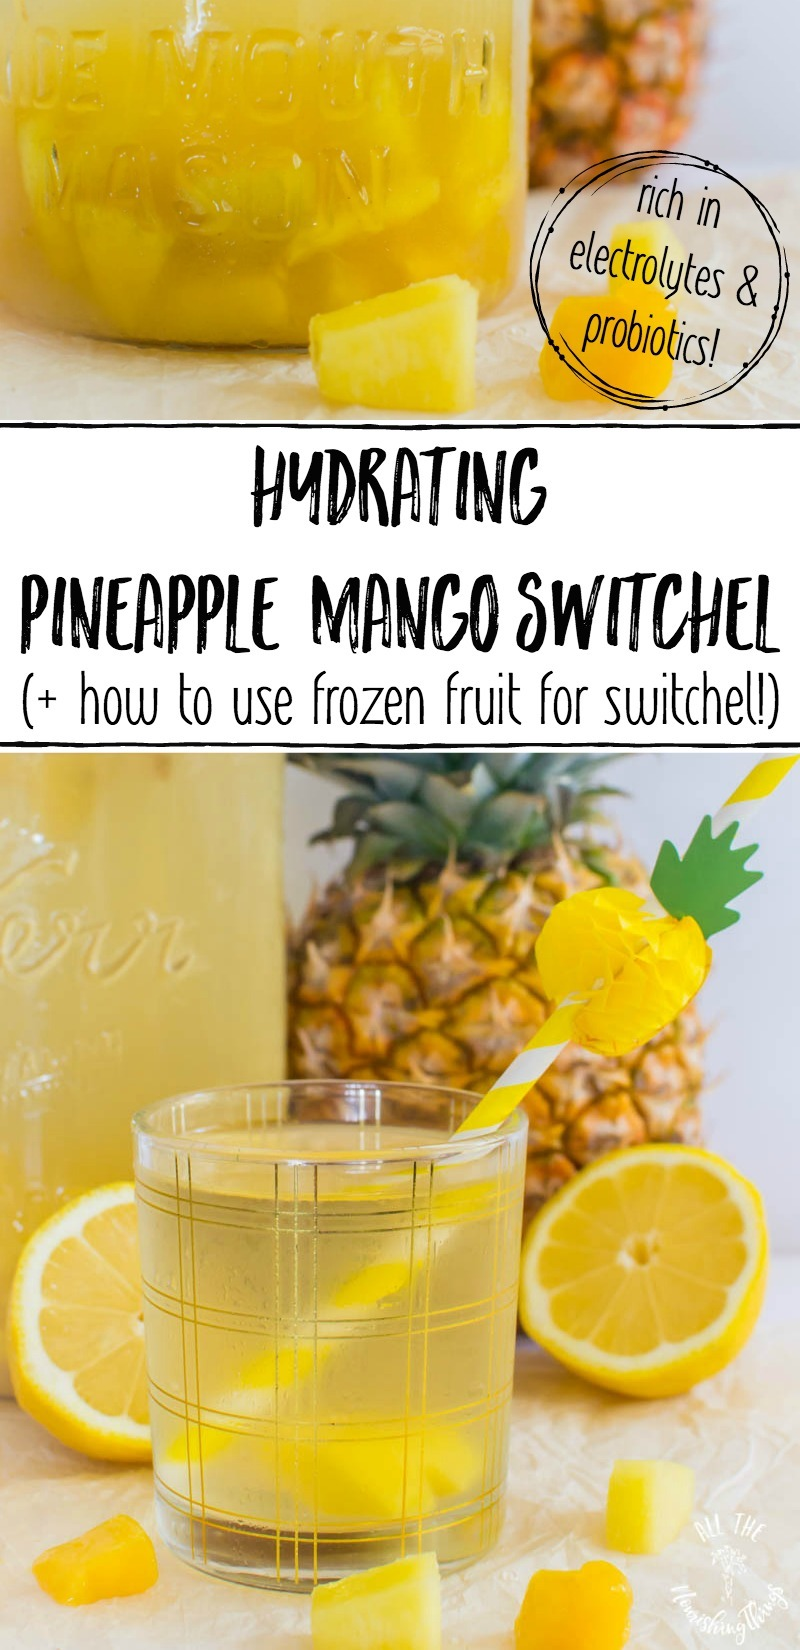 pineapple mango switchel with text overlay